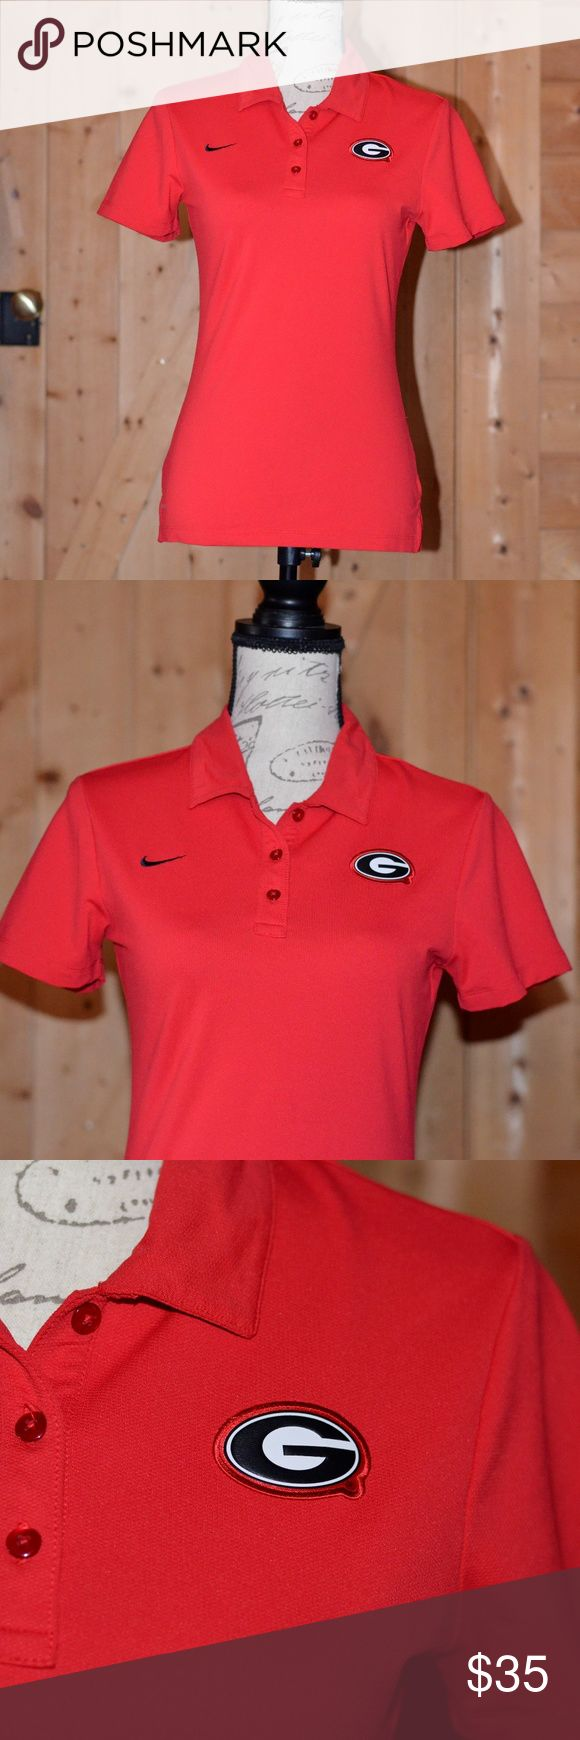 MAKE AN OFFER- NWOT Georgia Bulldogs Nike polo Root for your SEC champs and get ready for the college football playoff game with this Nike GA Bulldogs polo shirt! This is a NWOT Georgia Bulldogs Nike Dri-Fit polo shirt, and the Nike check and GA logos are embroidered, not applique. Only tried on, couldn't take back. Size small. Feel free to make an offer or to ask questions! Nike Tops